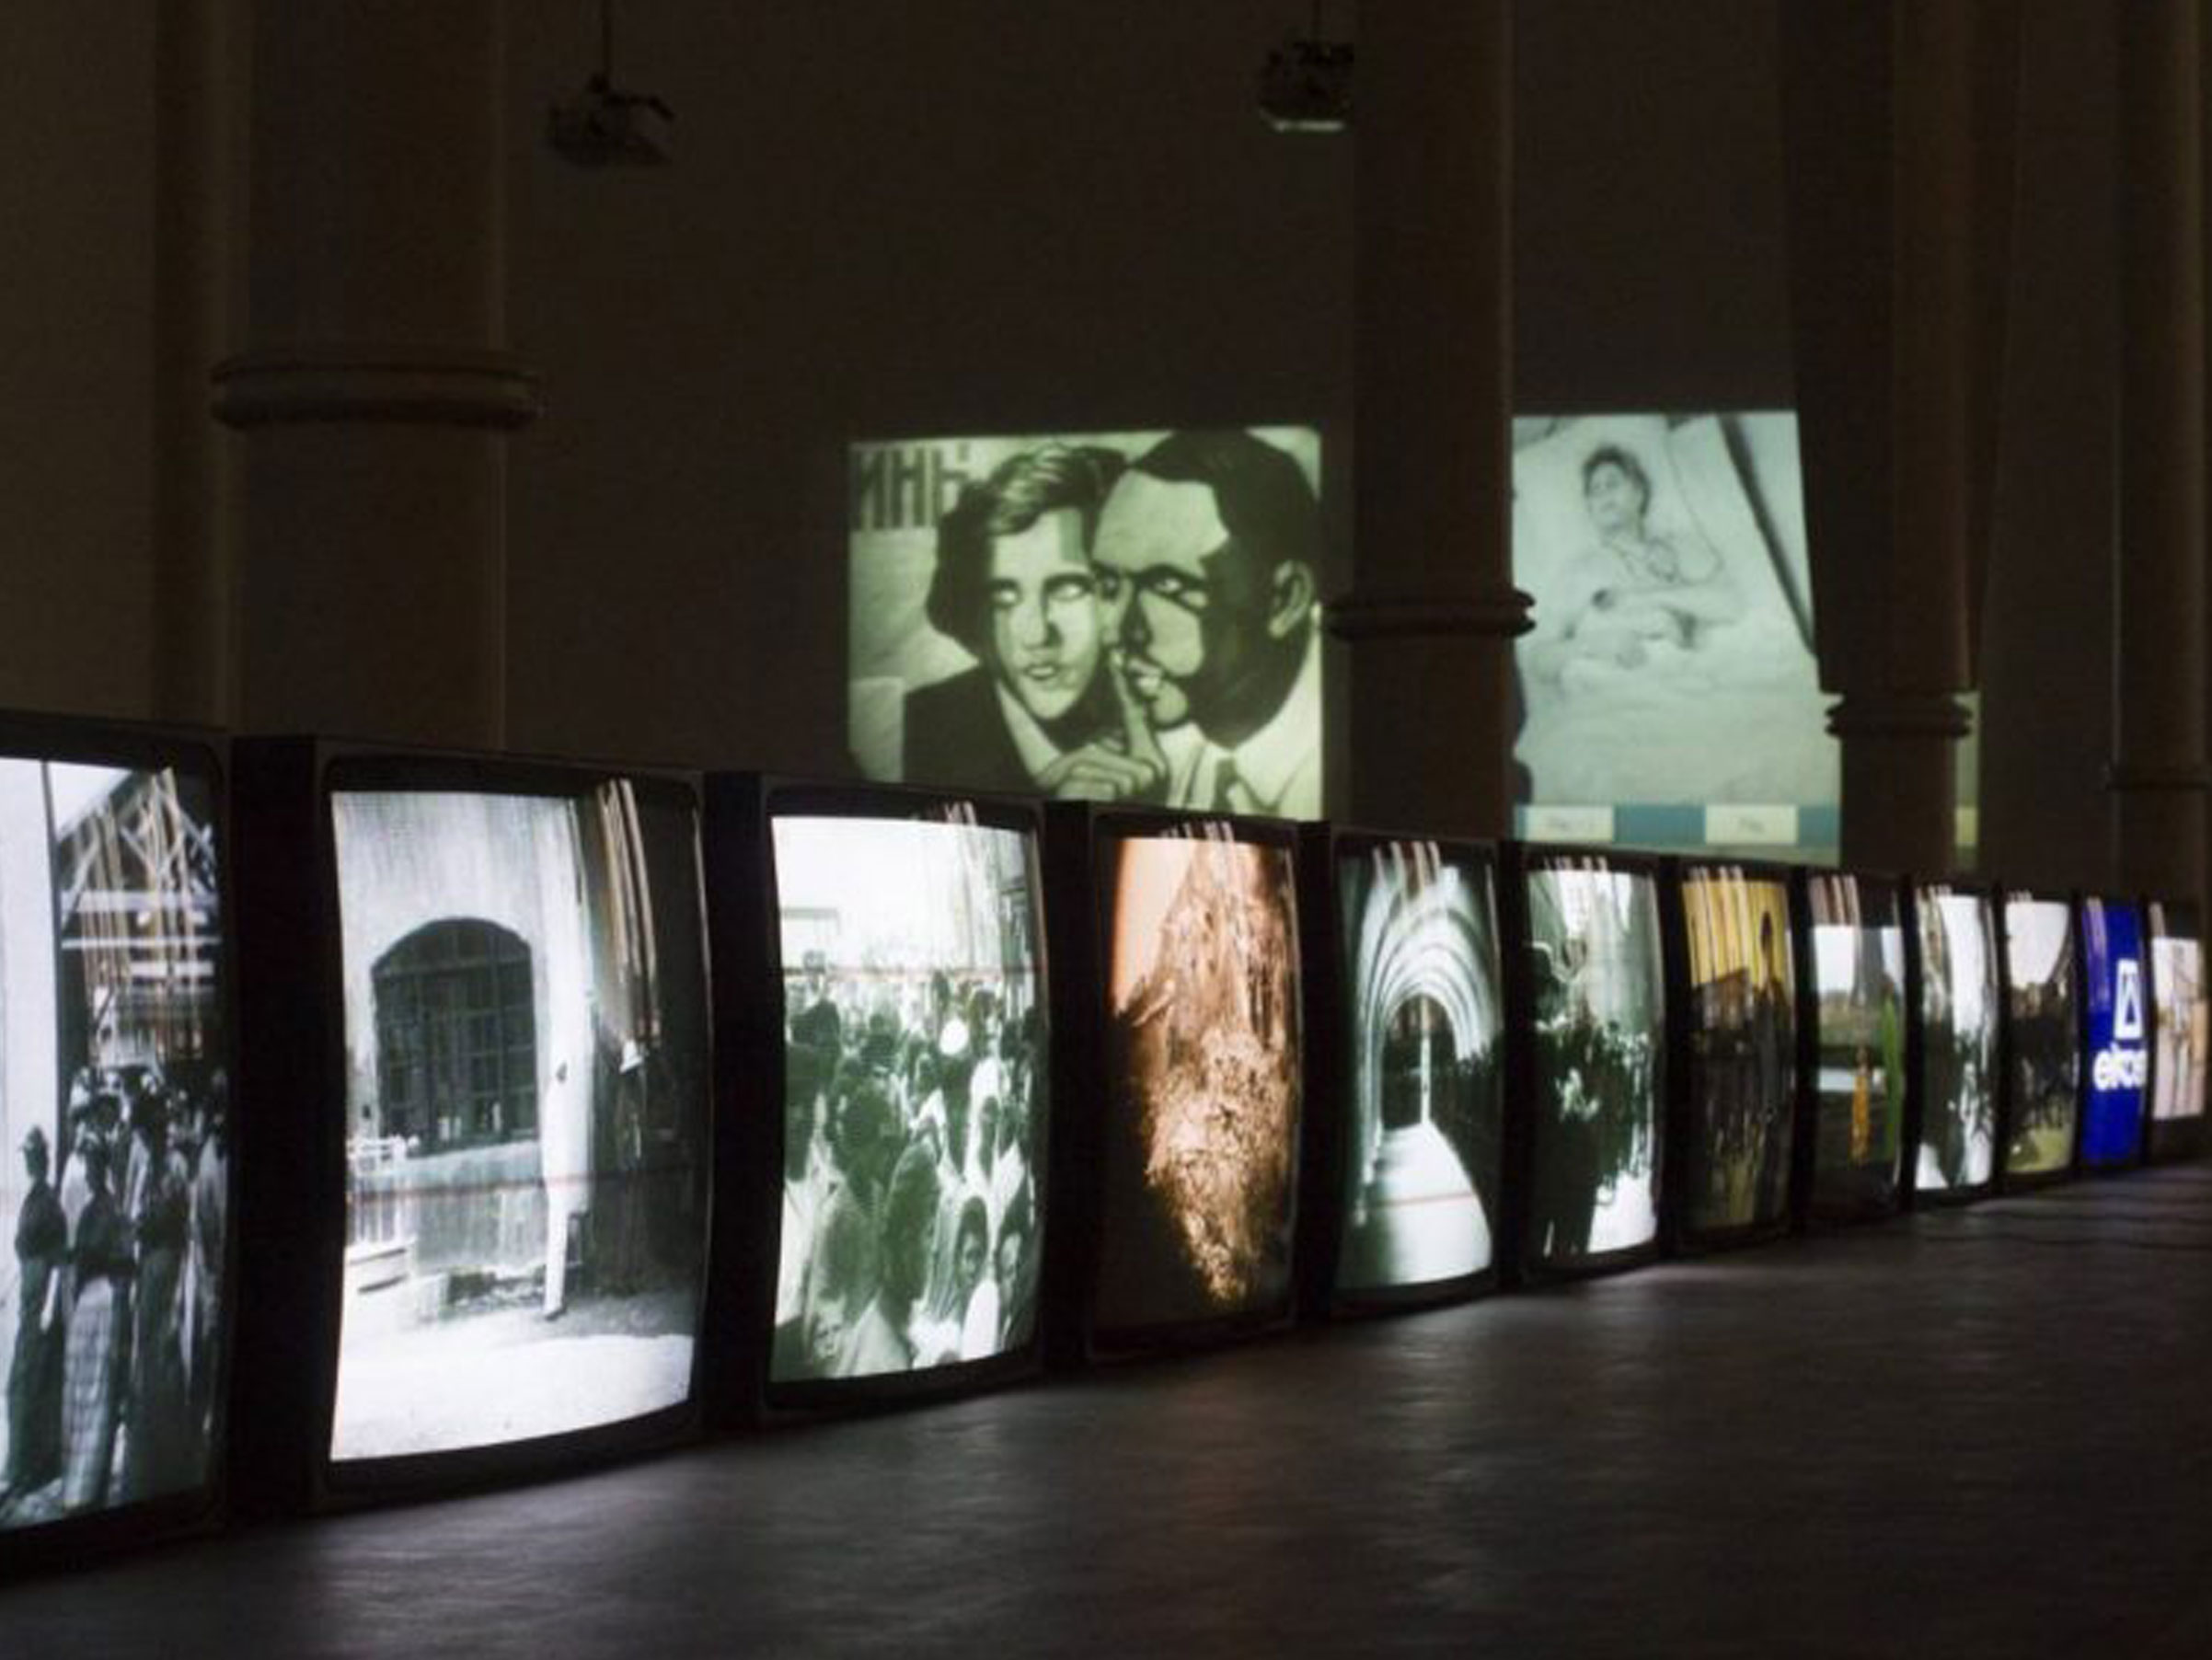 Harun Farocki: Forms of Intelligence between Text and Image